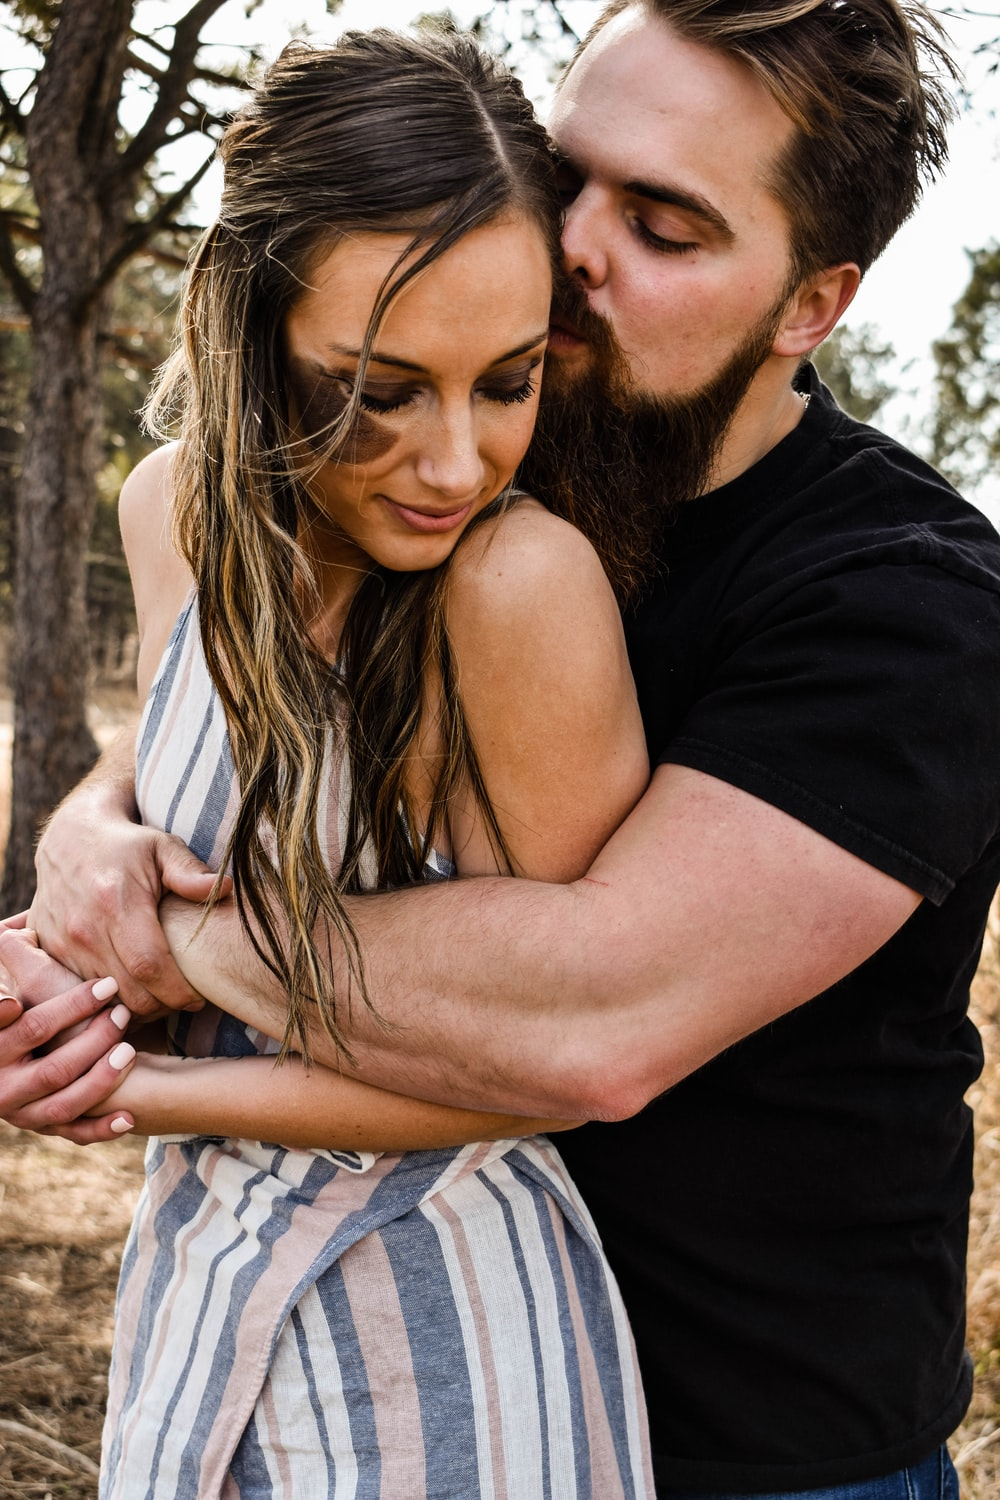 man in black t-shirt kissing woman in white and blue plaid dress